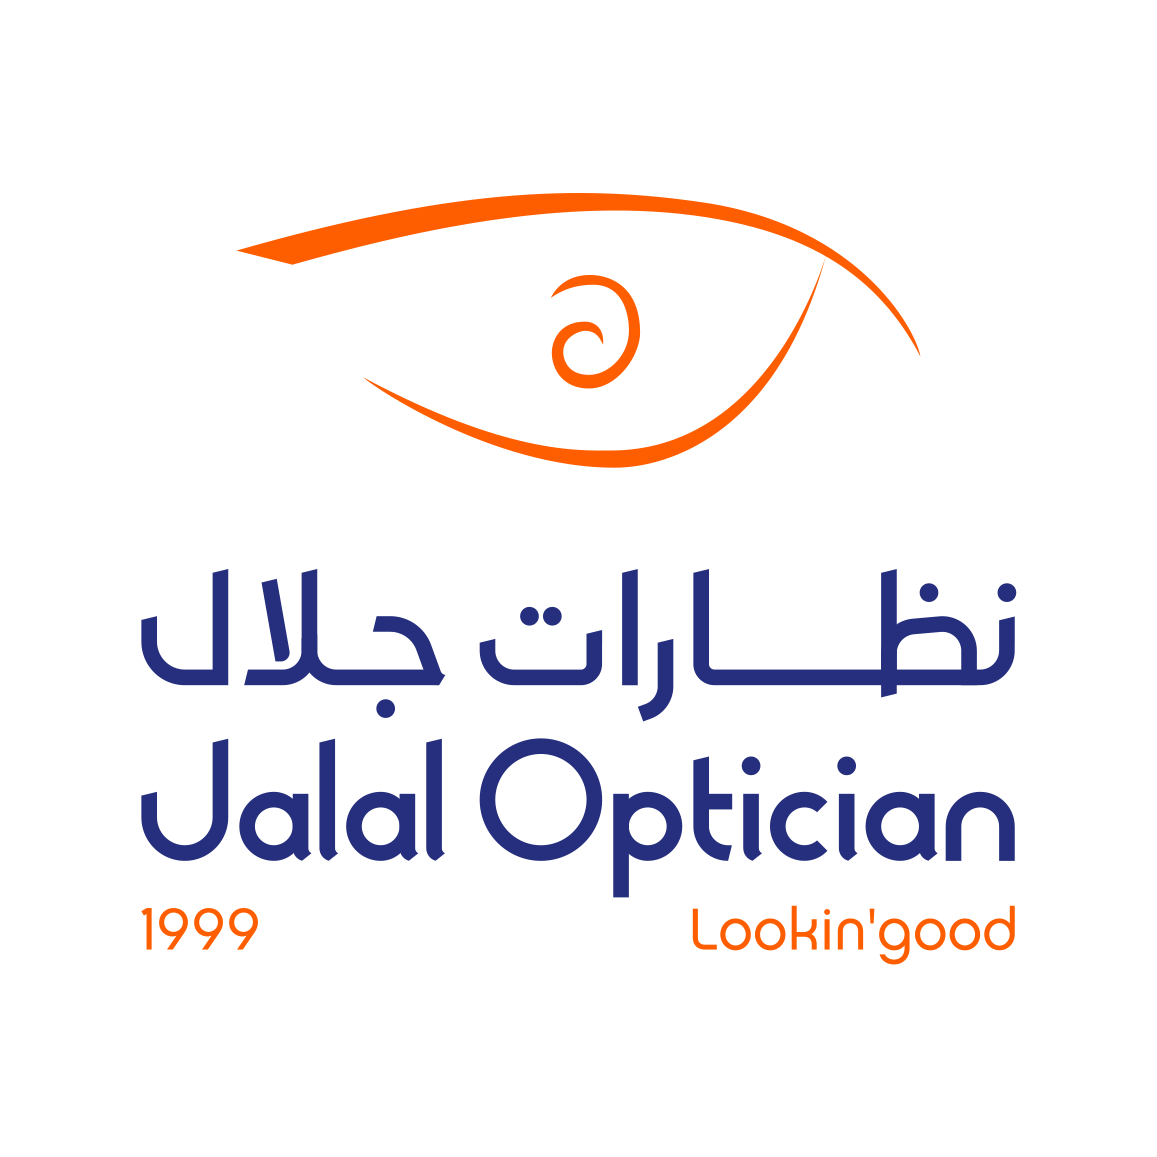 Jalal Optician